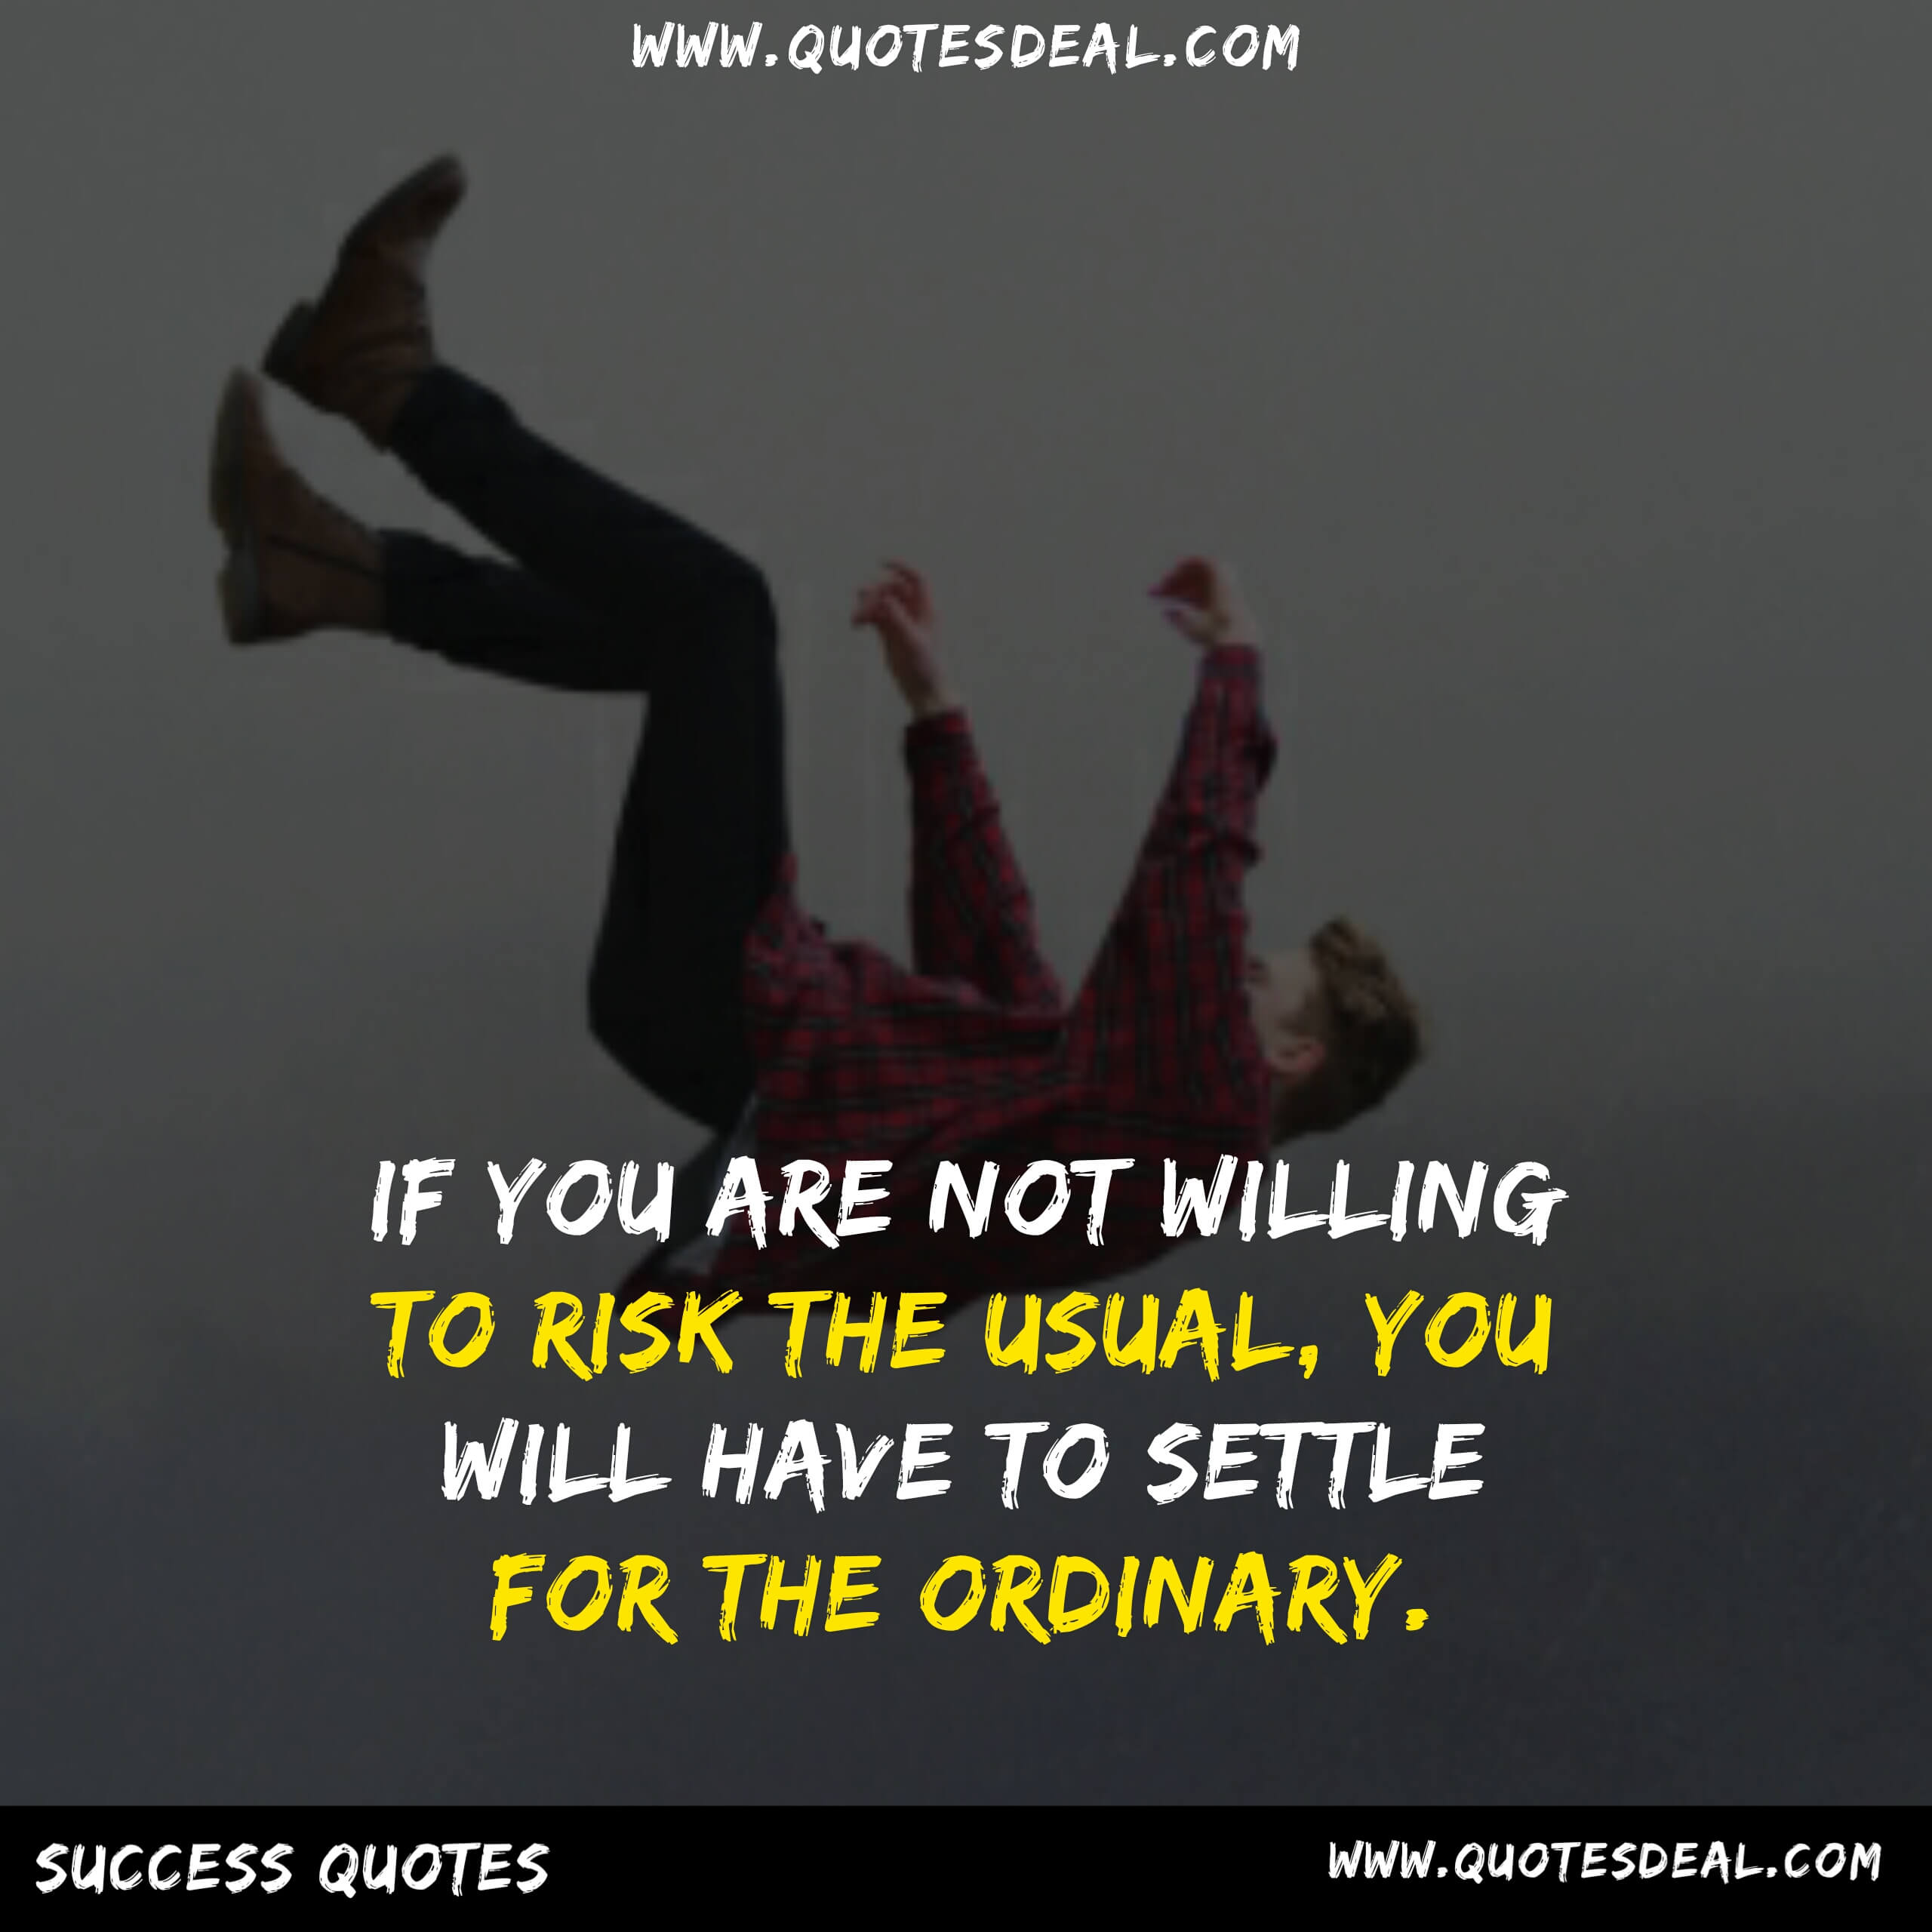 If you are not willing